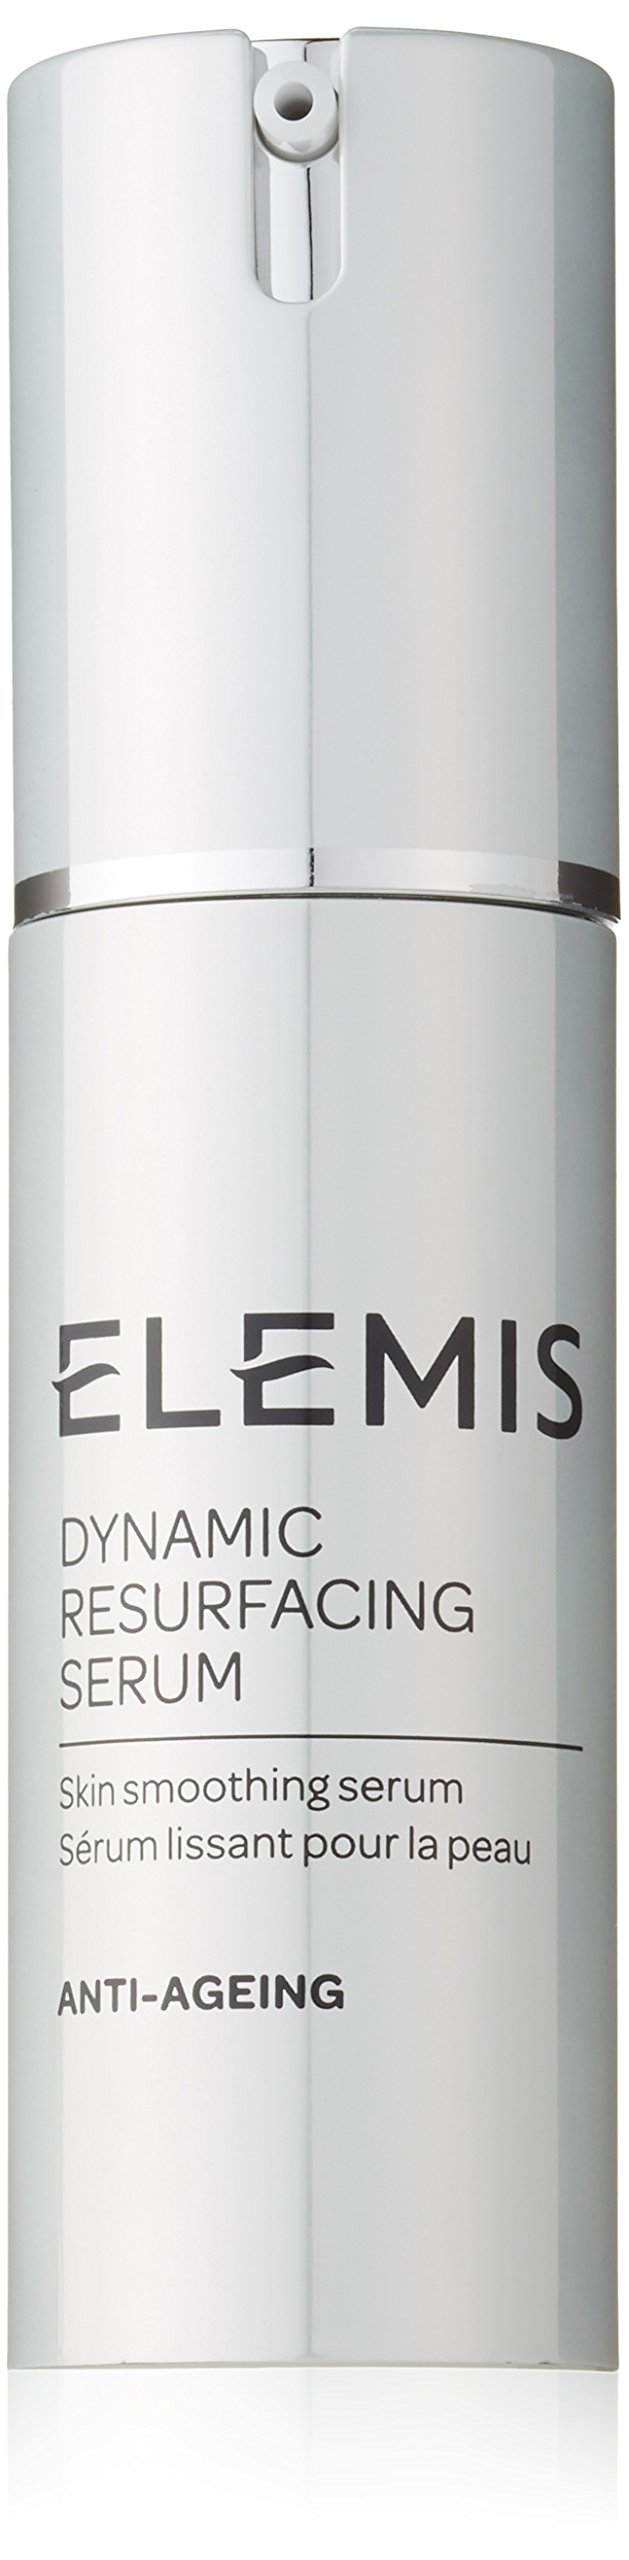 ELEMIS Dynamic Resurfacing Serum, Skin Smoothing Serum, 1.0 fl. oz.